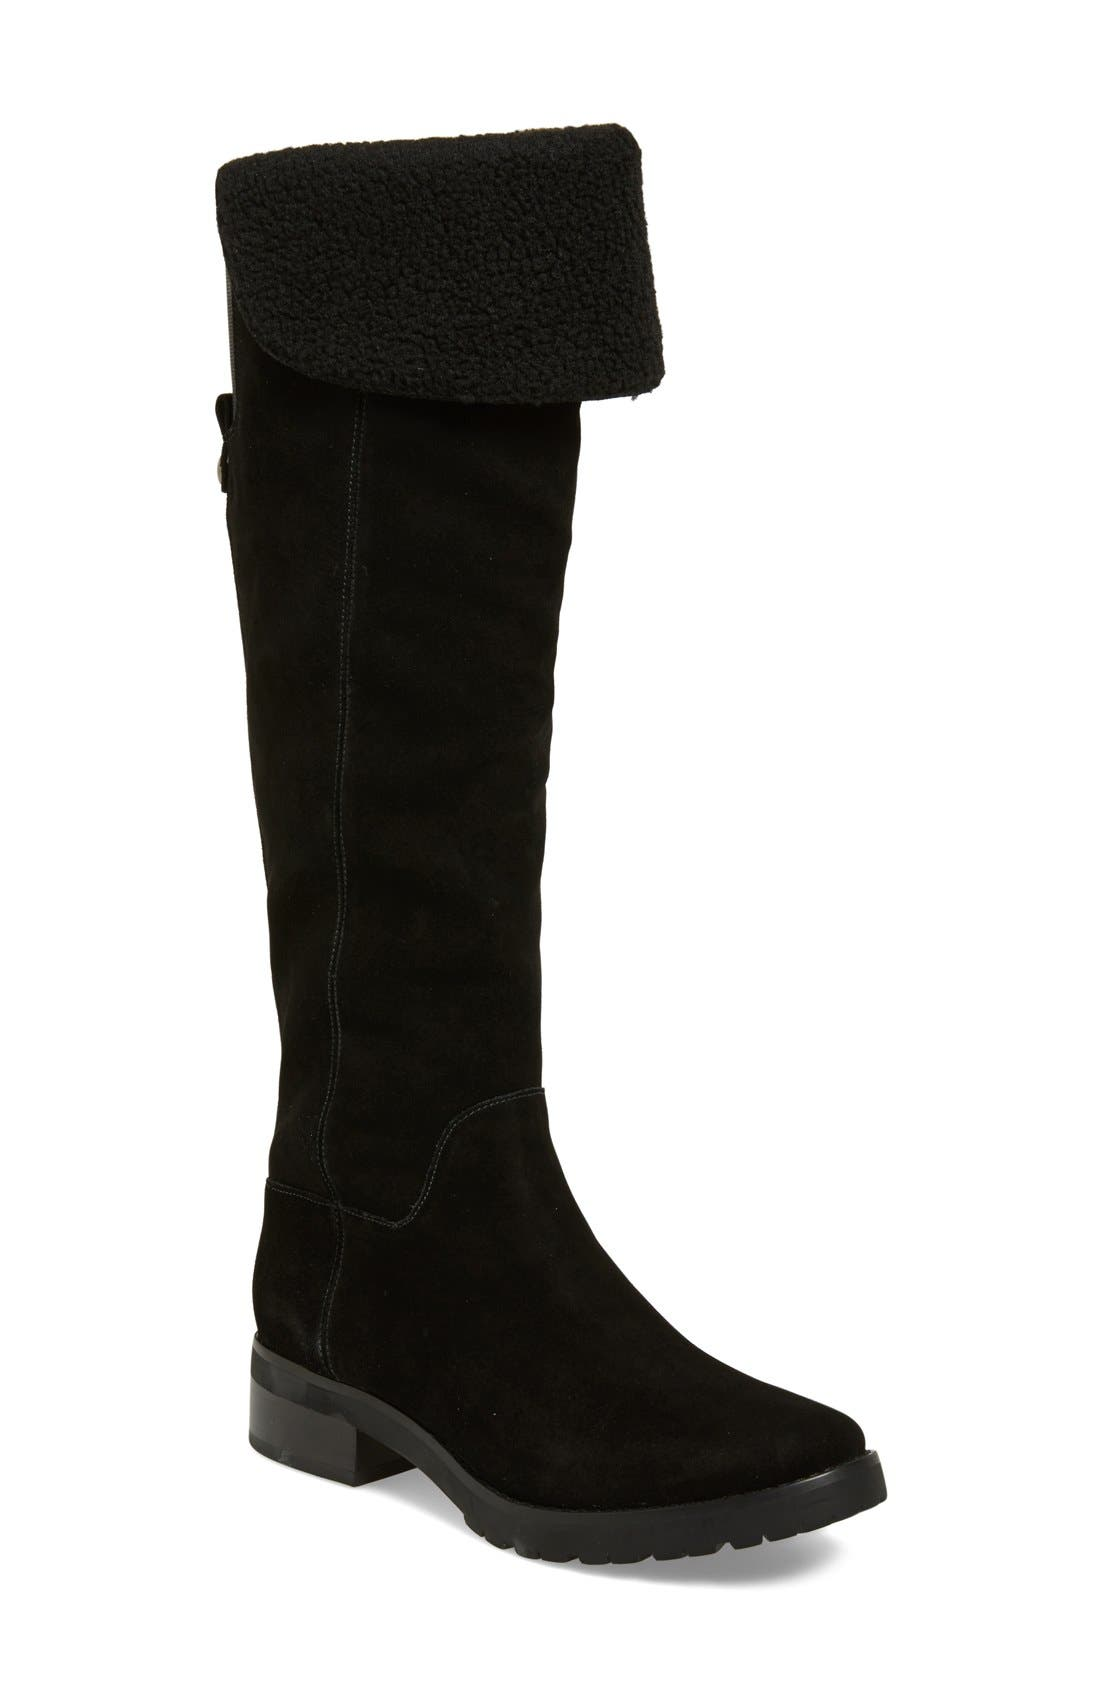 MICHAEL MICHAEL KORS 'Whitaker' Water Resistant Tall Boot, Main, color, 001